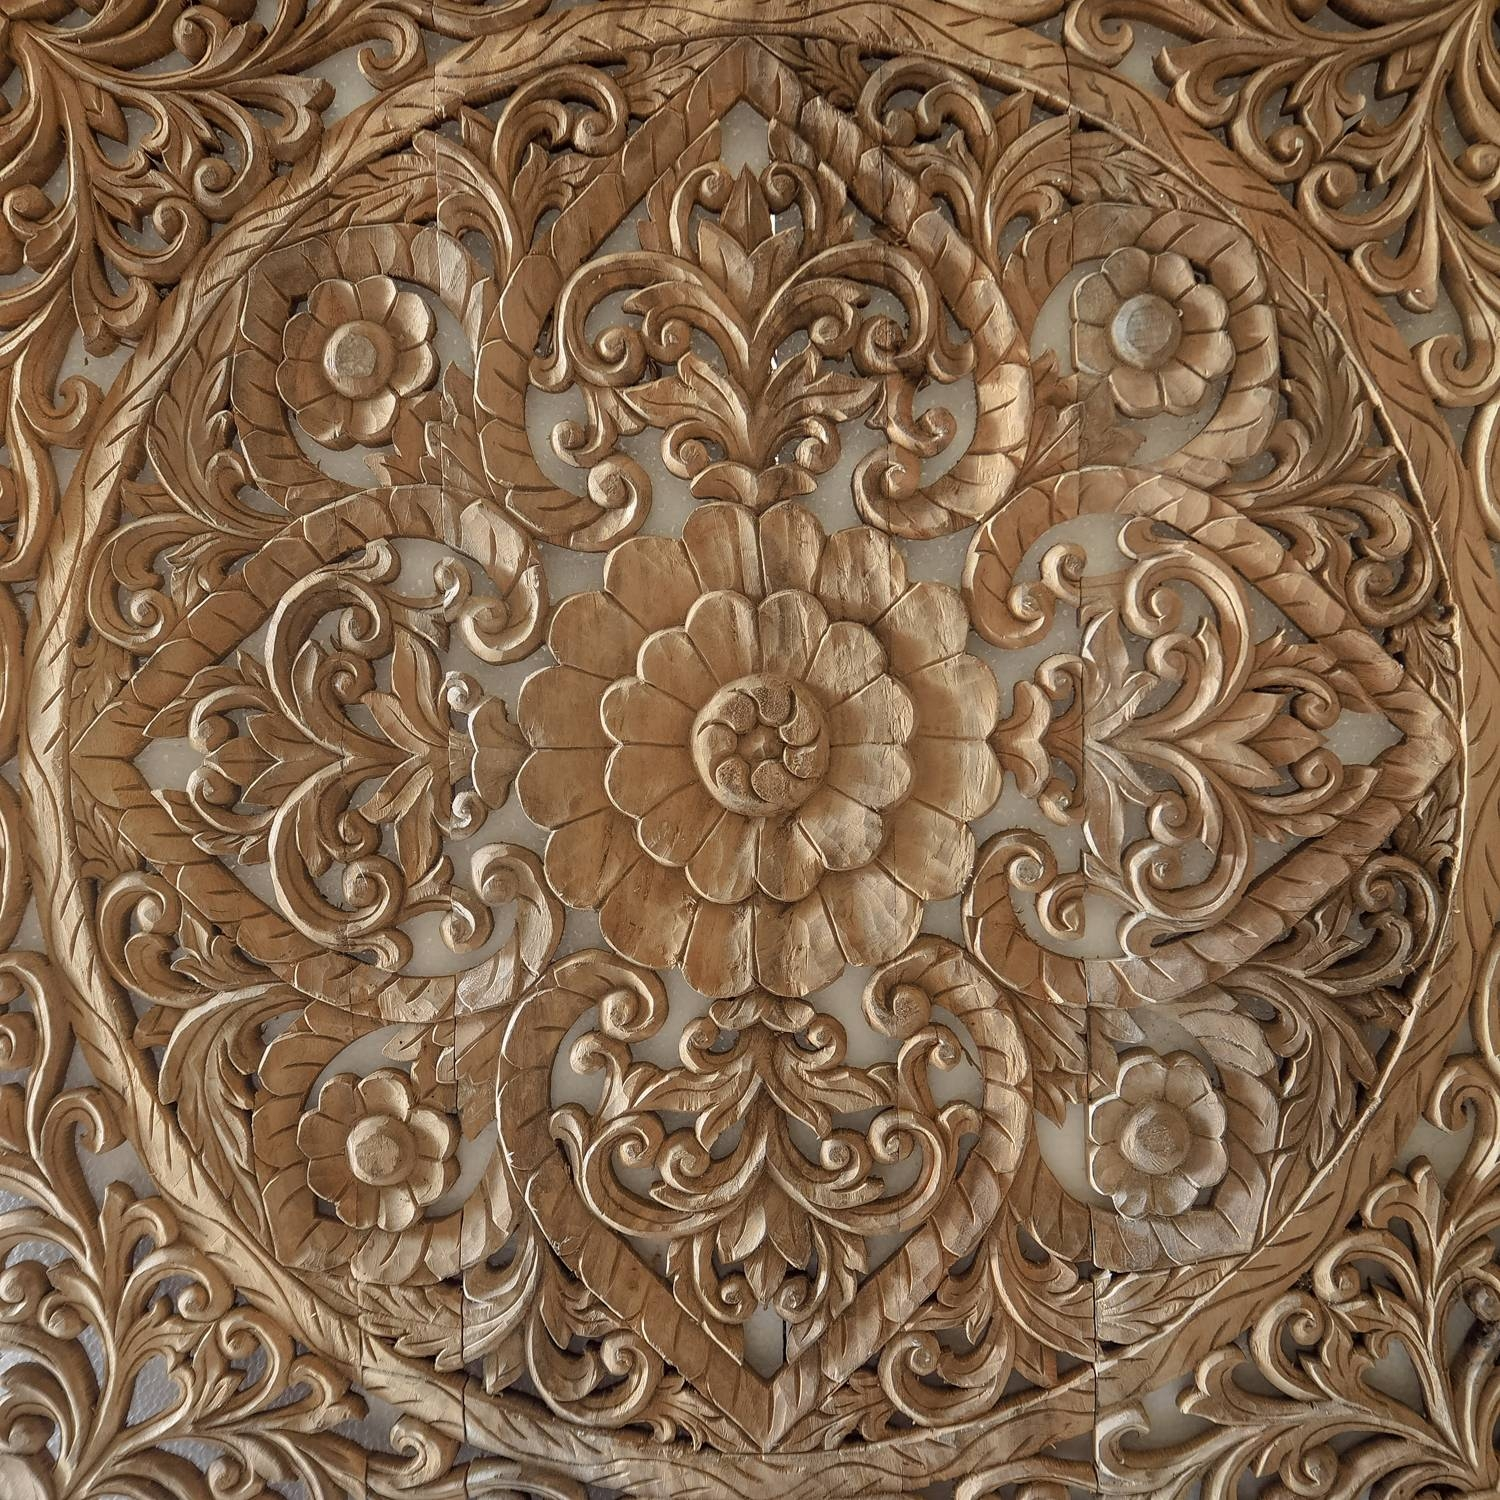 Hand Carved Wall Panel From Bali – Siam Sawadee Regarding Latest Wooden Wall Art Panels (View 7 of 20)